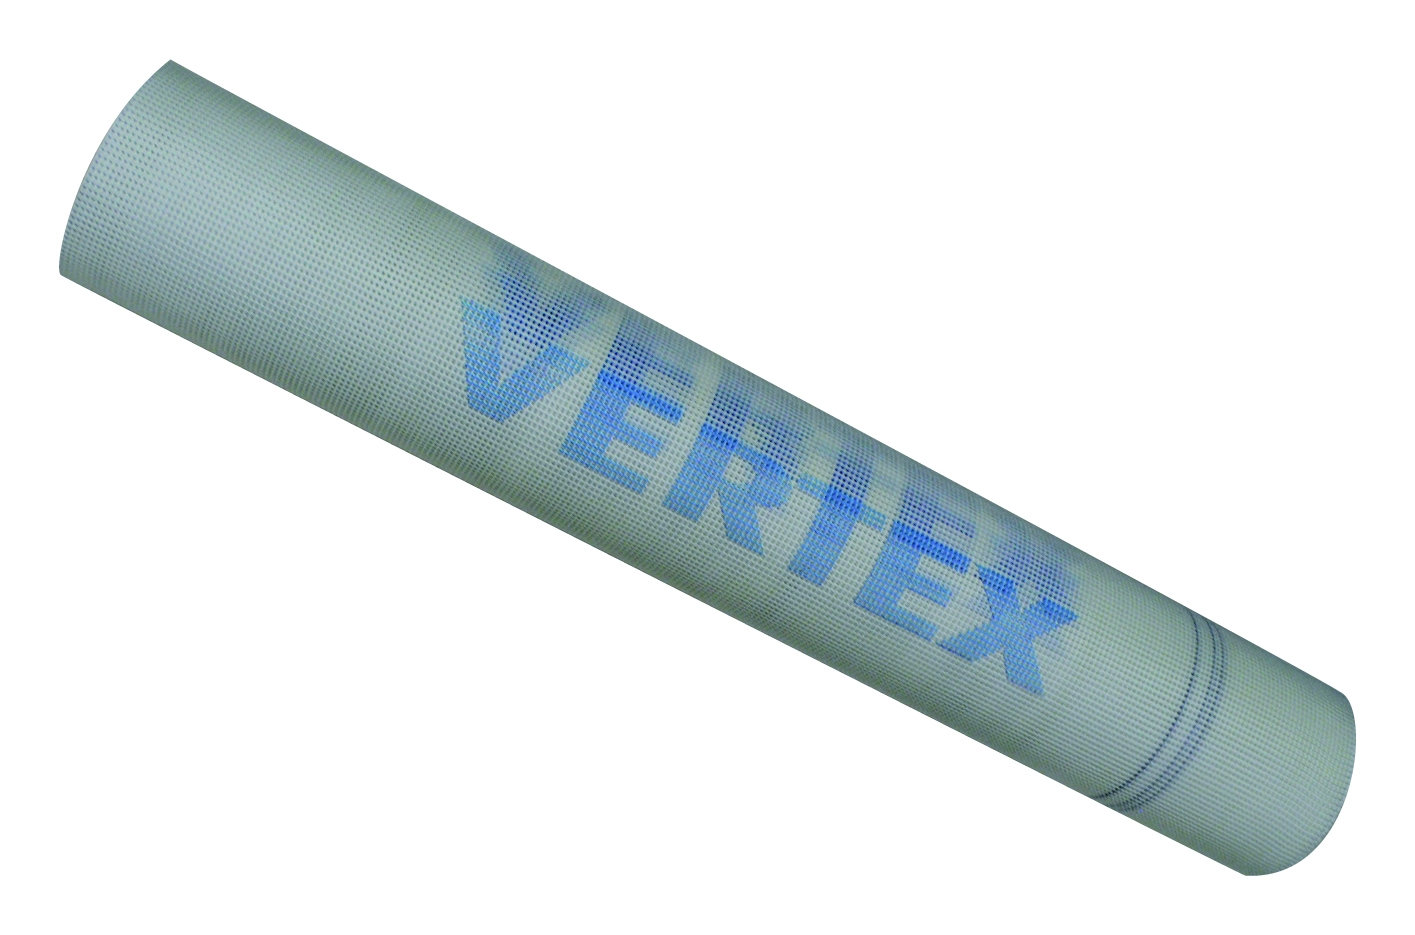 Perlinka Vertex R 51 - 58 g/m<sup>2</sup>